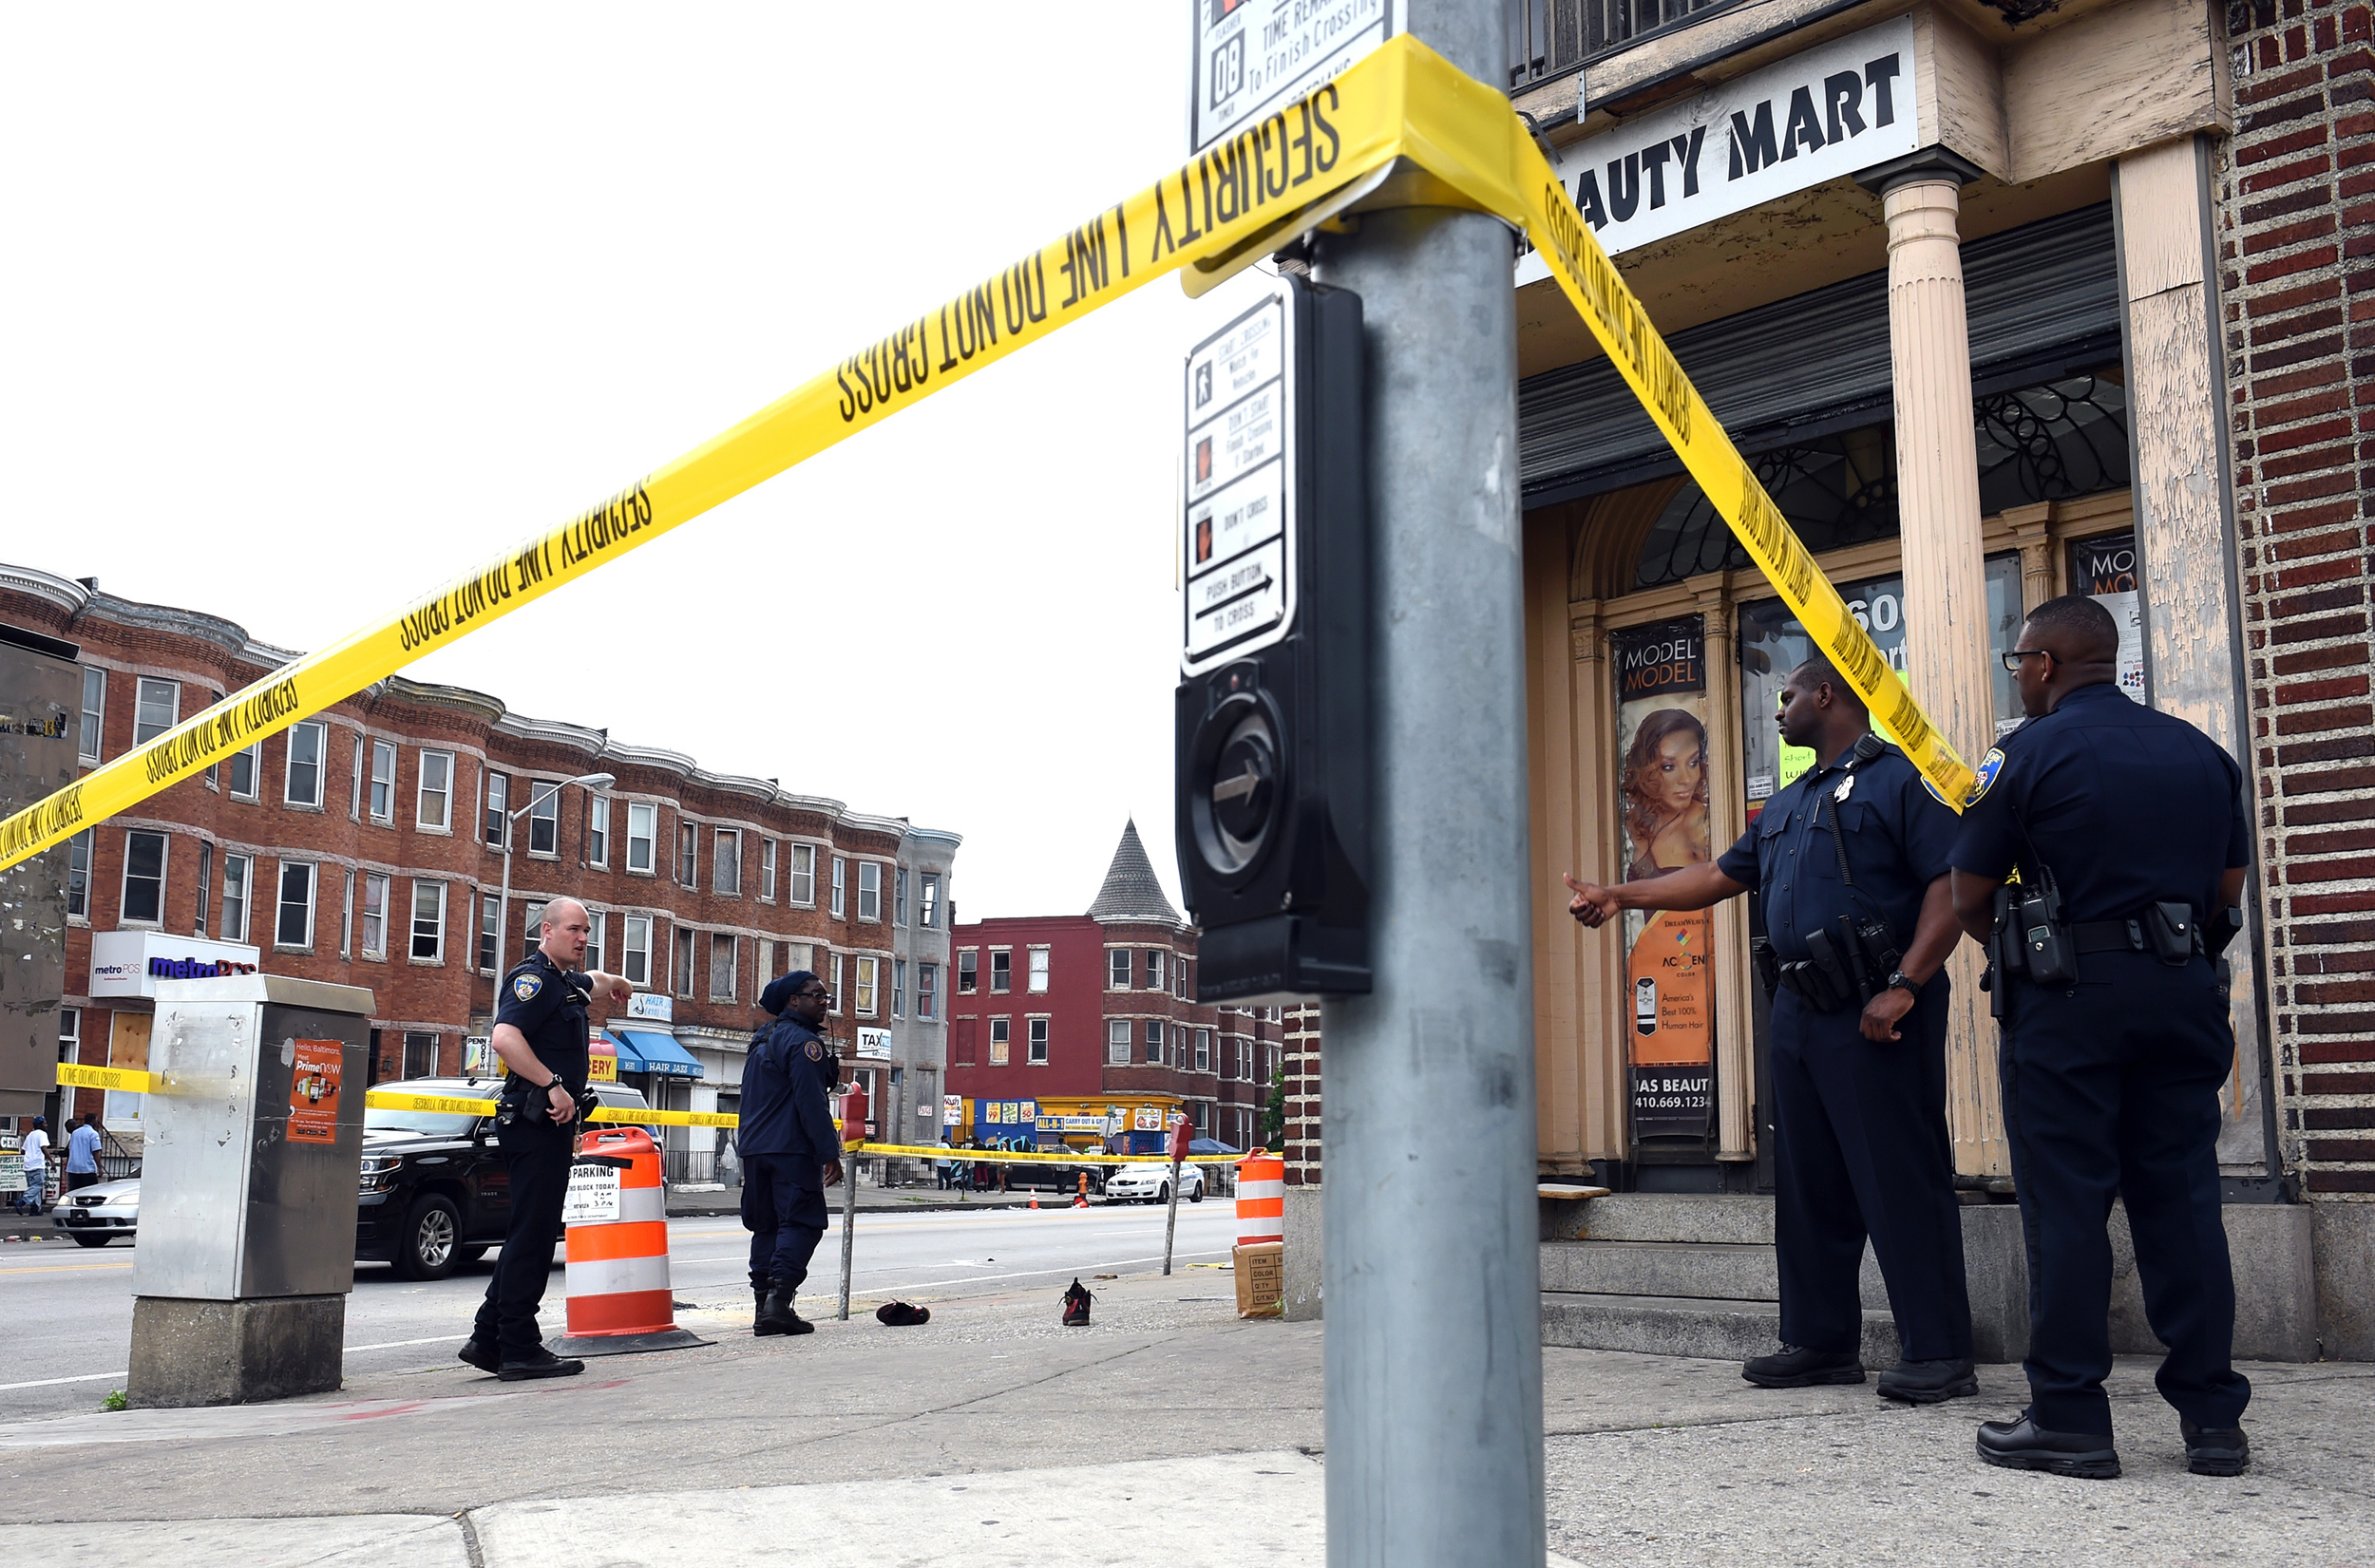 Image: Violence in Baltimore